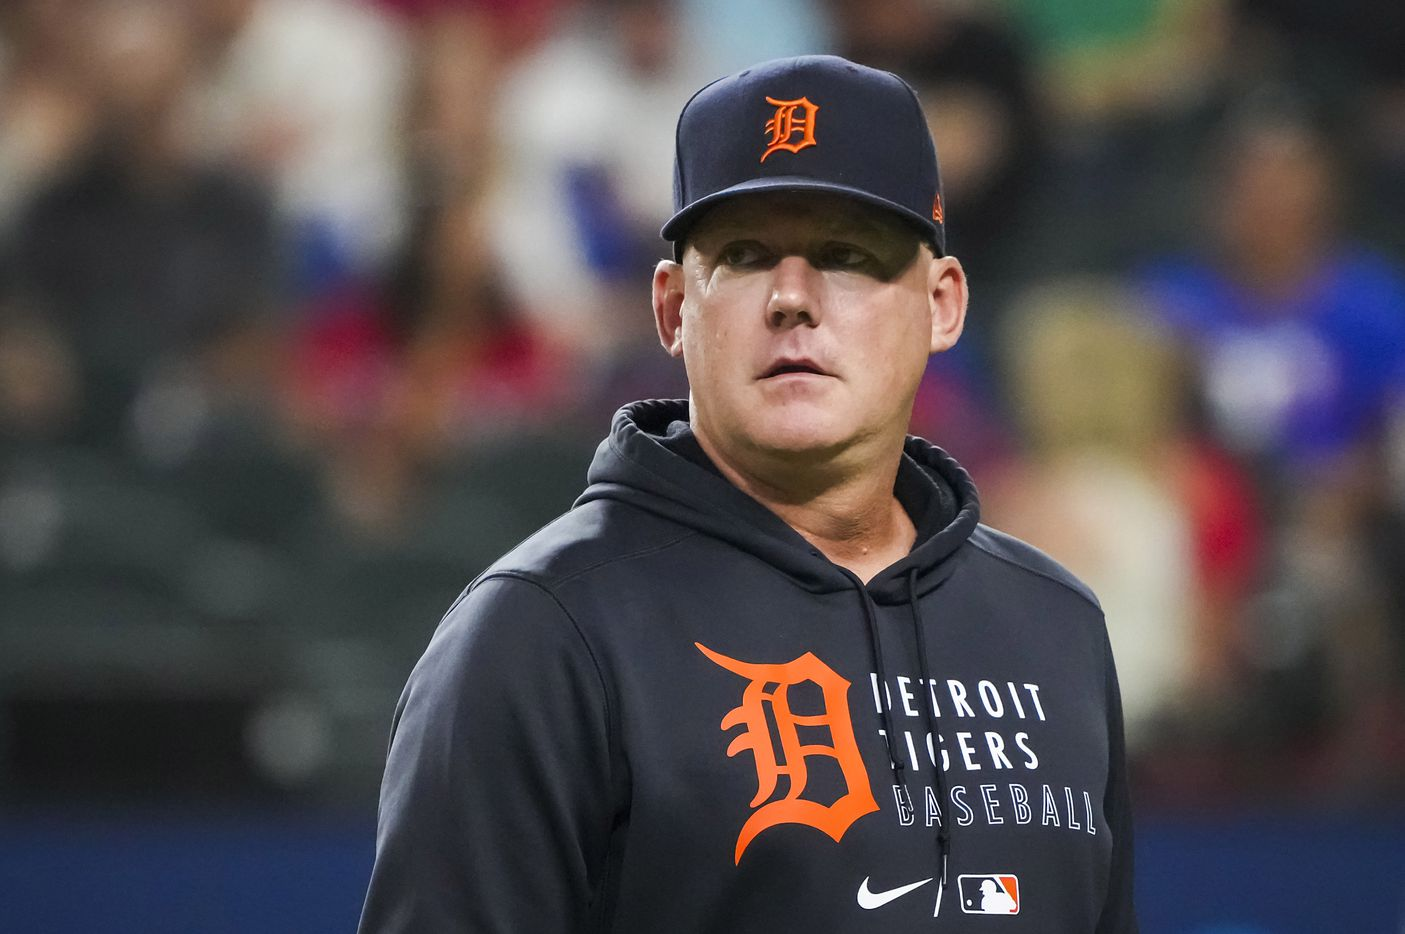 Detroit Tigers manager A.J. Hinch heads back to the dugout after removing starting pitcher Jose Urena from the game during the fifth inning against the Texas Rangers at Globe Life Field on Tuesday, July 6, 2021.